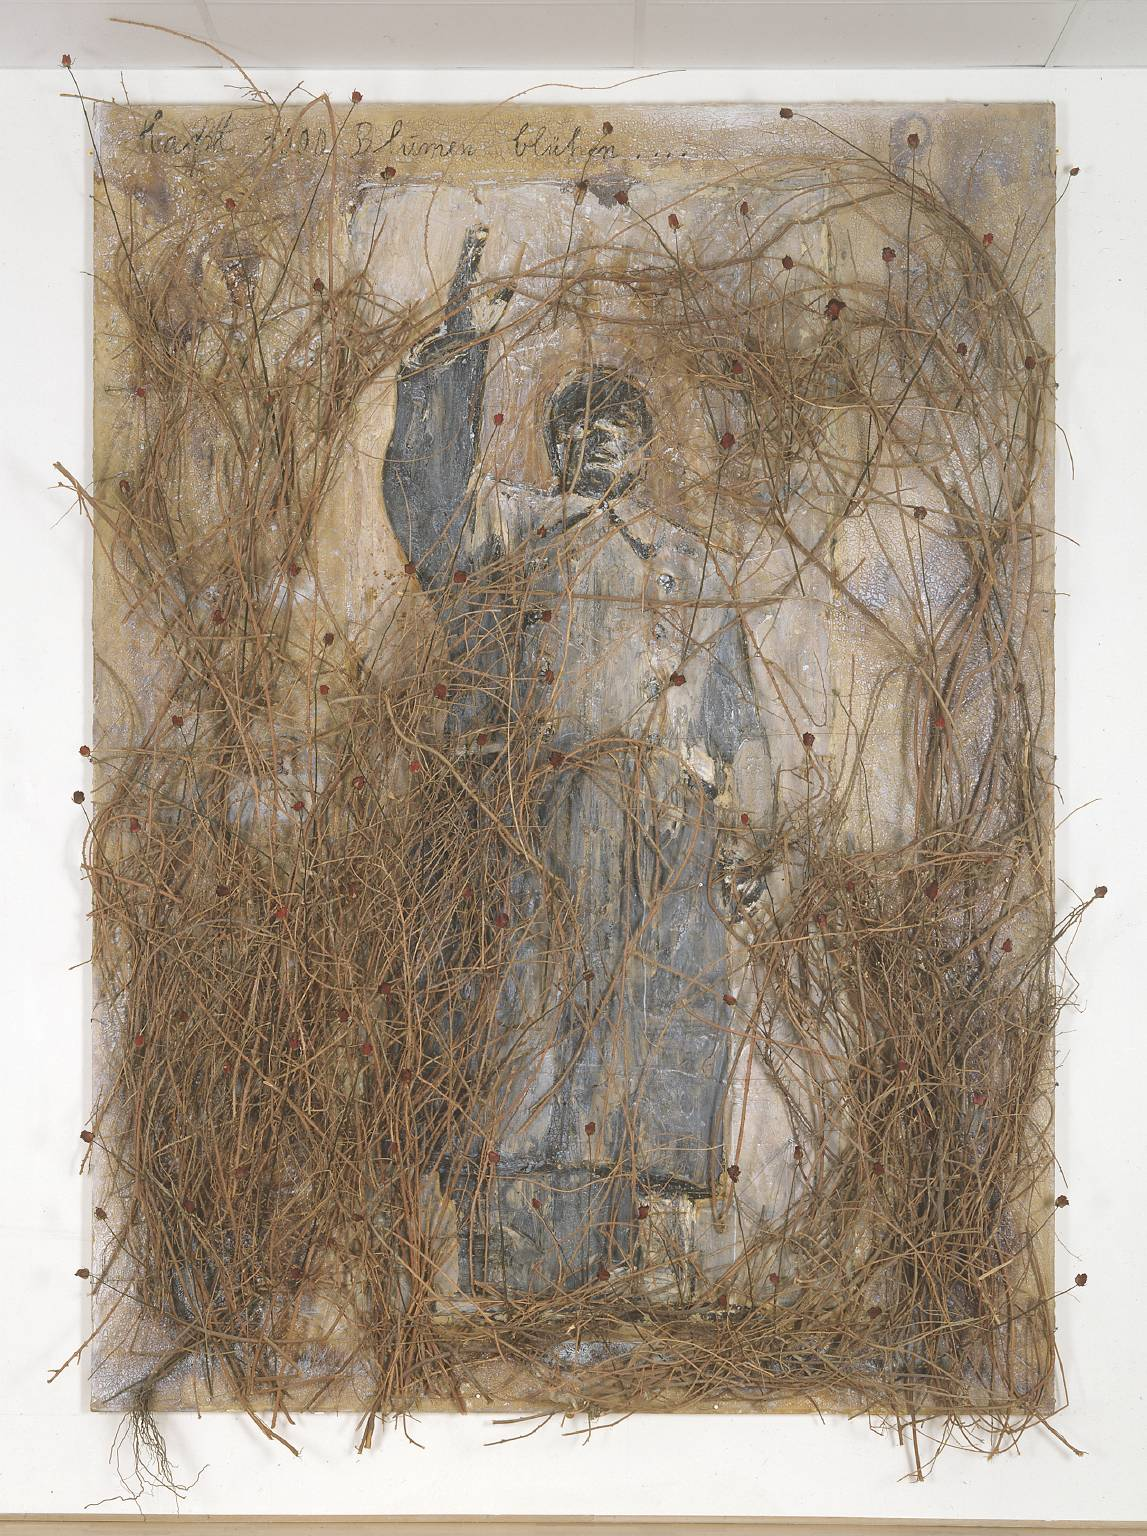 Anselm Kiefer. Let a Thousand Flowers Bloom 2000. Cortesía Tate Gallery.